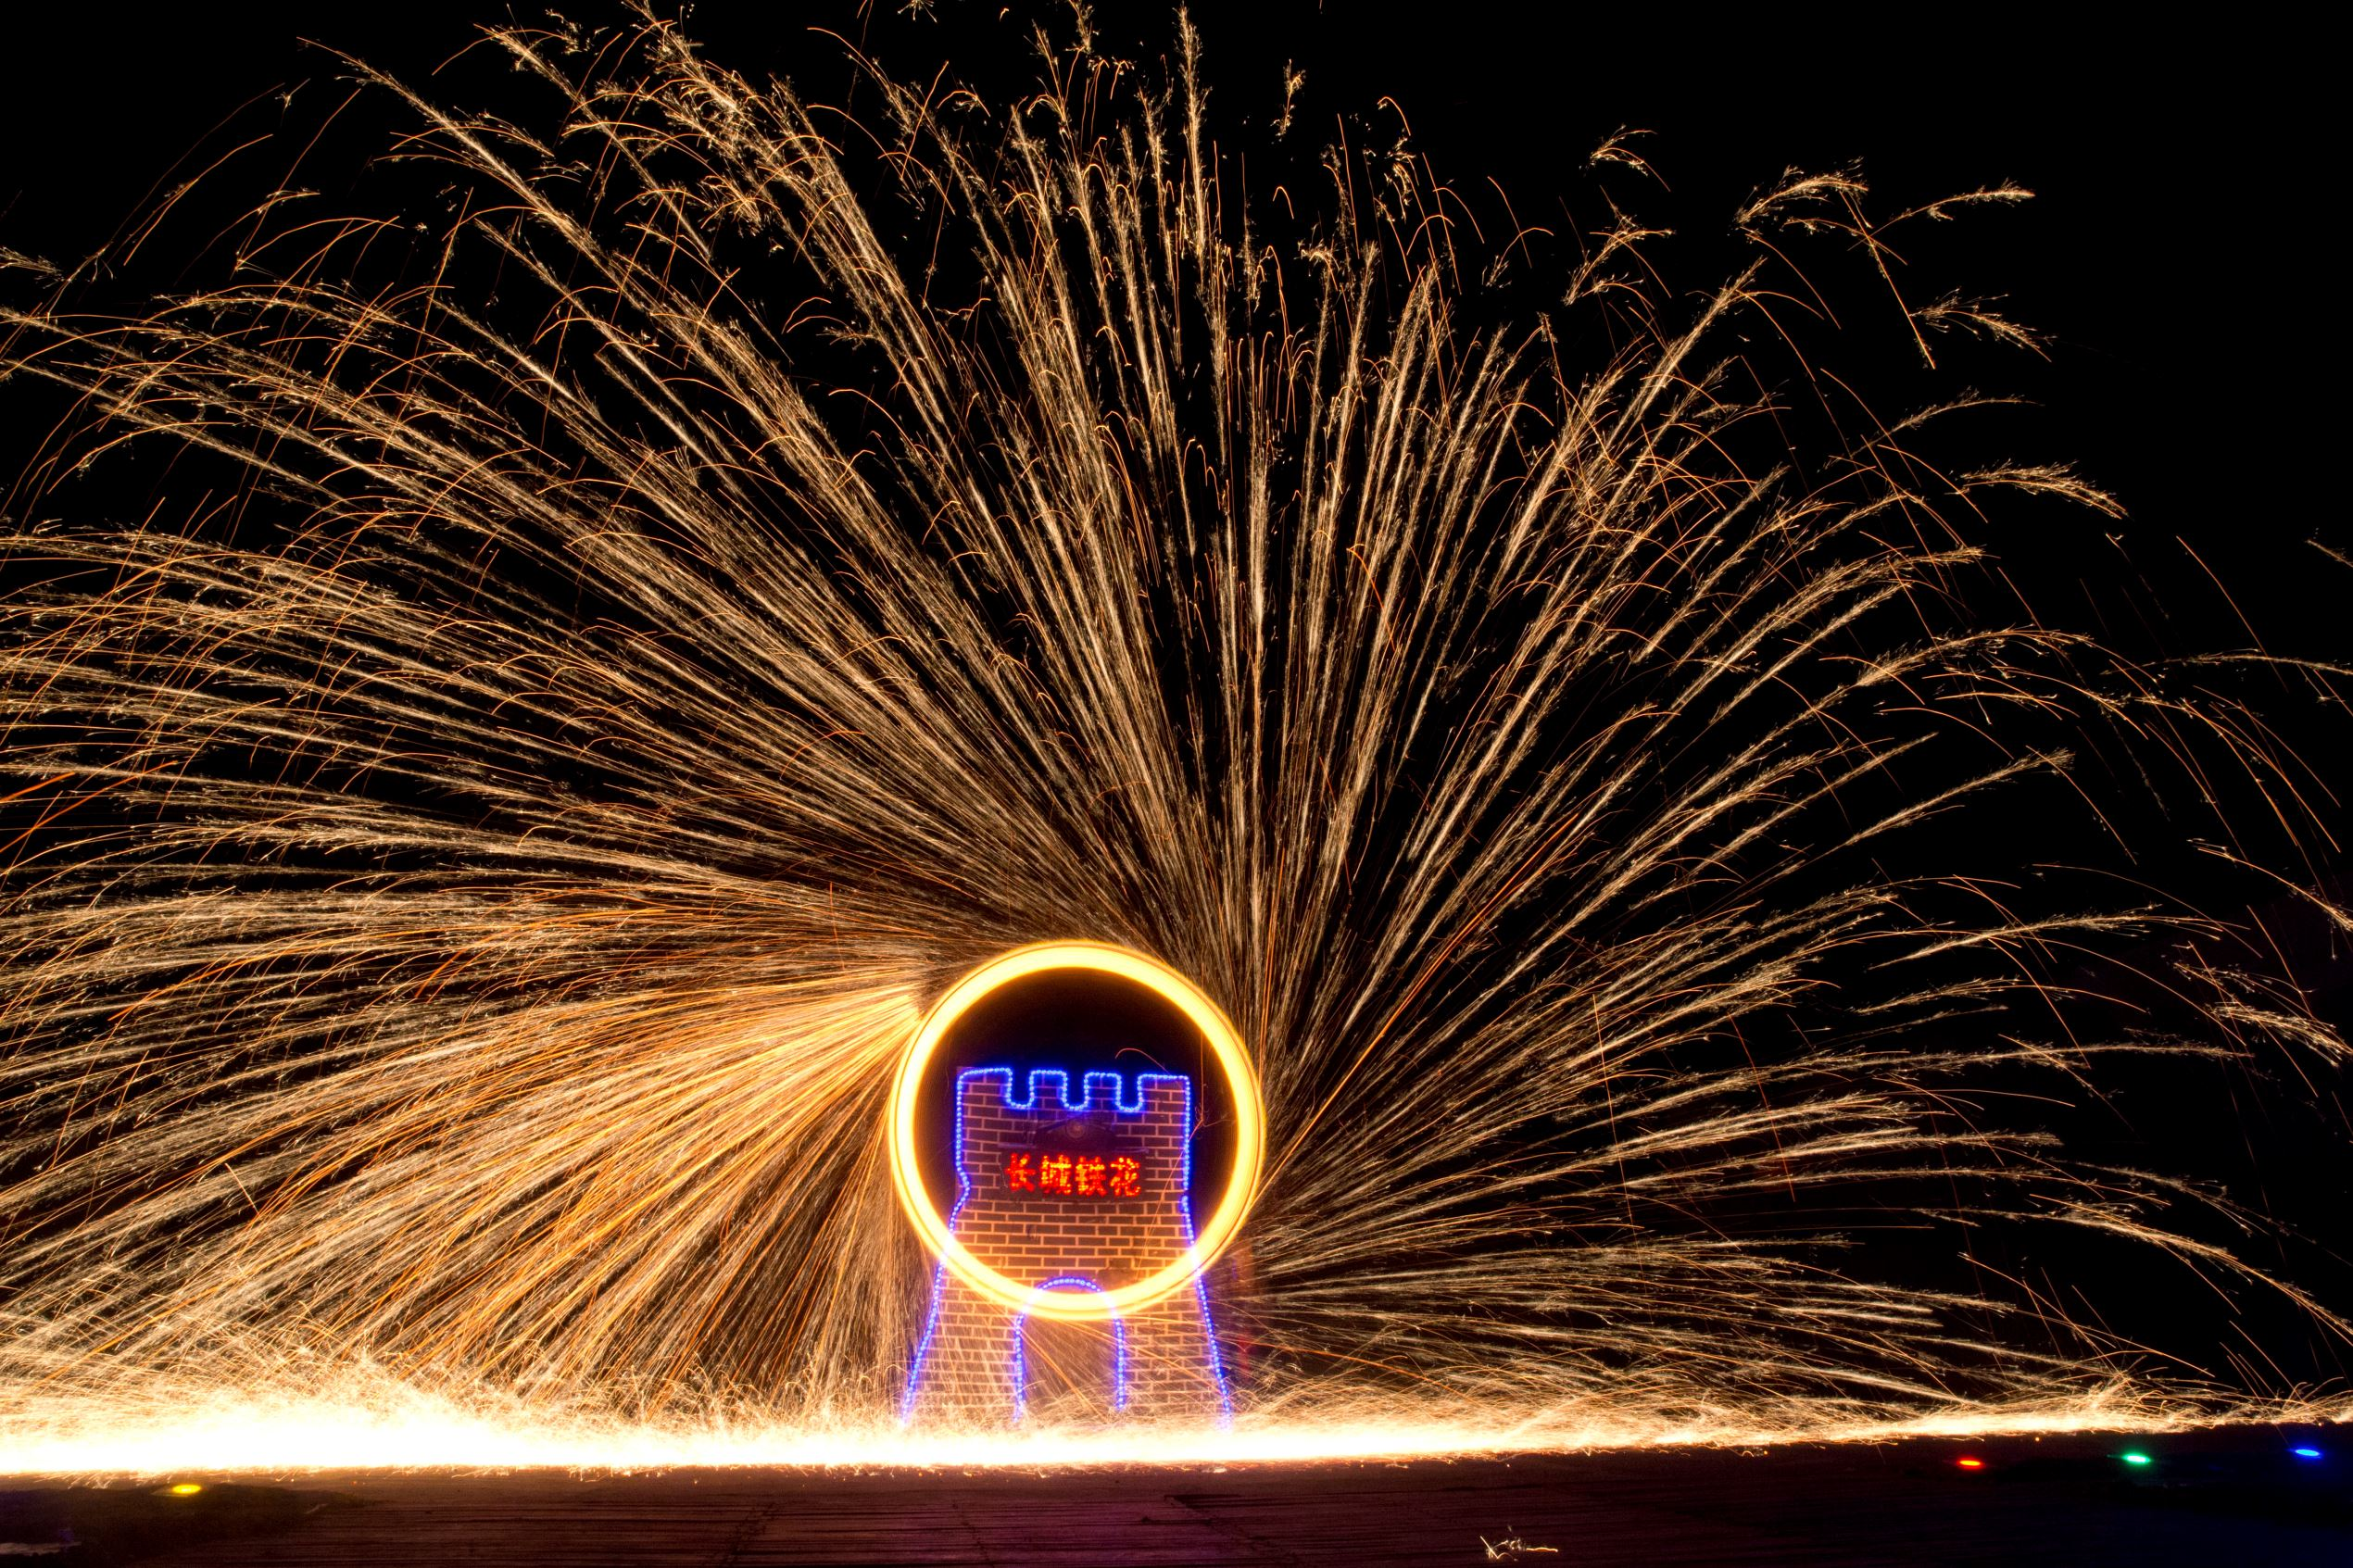 Performers turn a wheel spinning molten iron to create sparks at the Great Wall Iron Sparks show in Yanqing county on the outskirts of Beijing, China on Jan. 28.  Ng Han Guan/AP Images